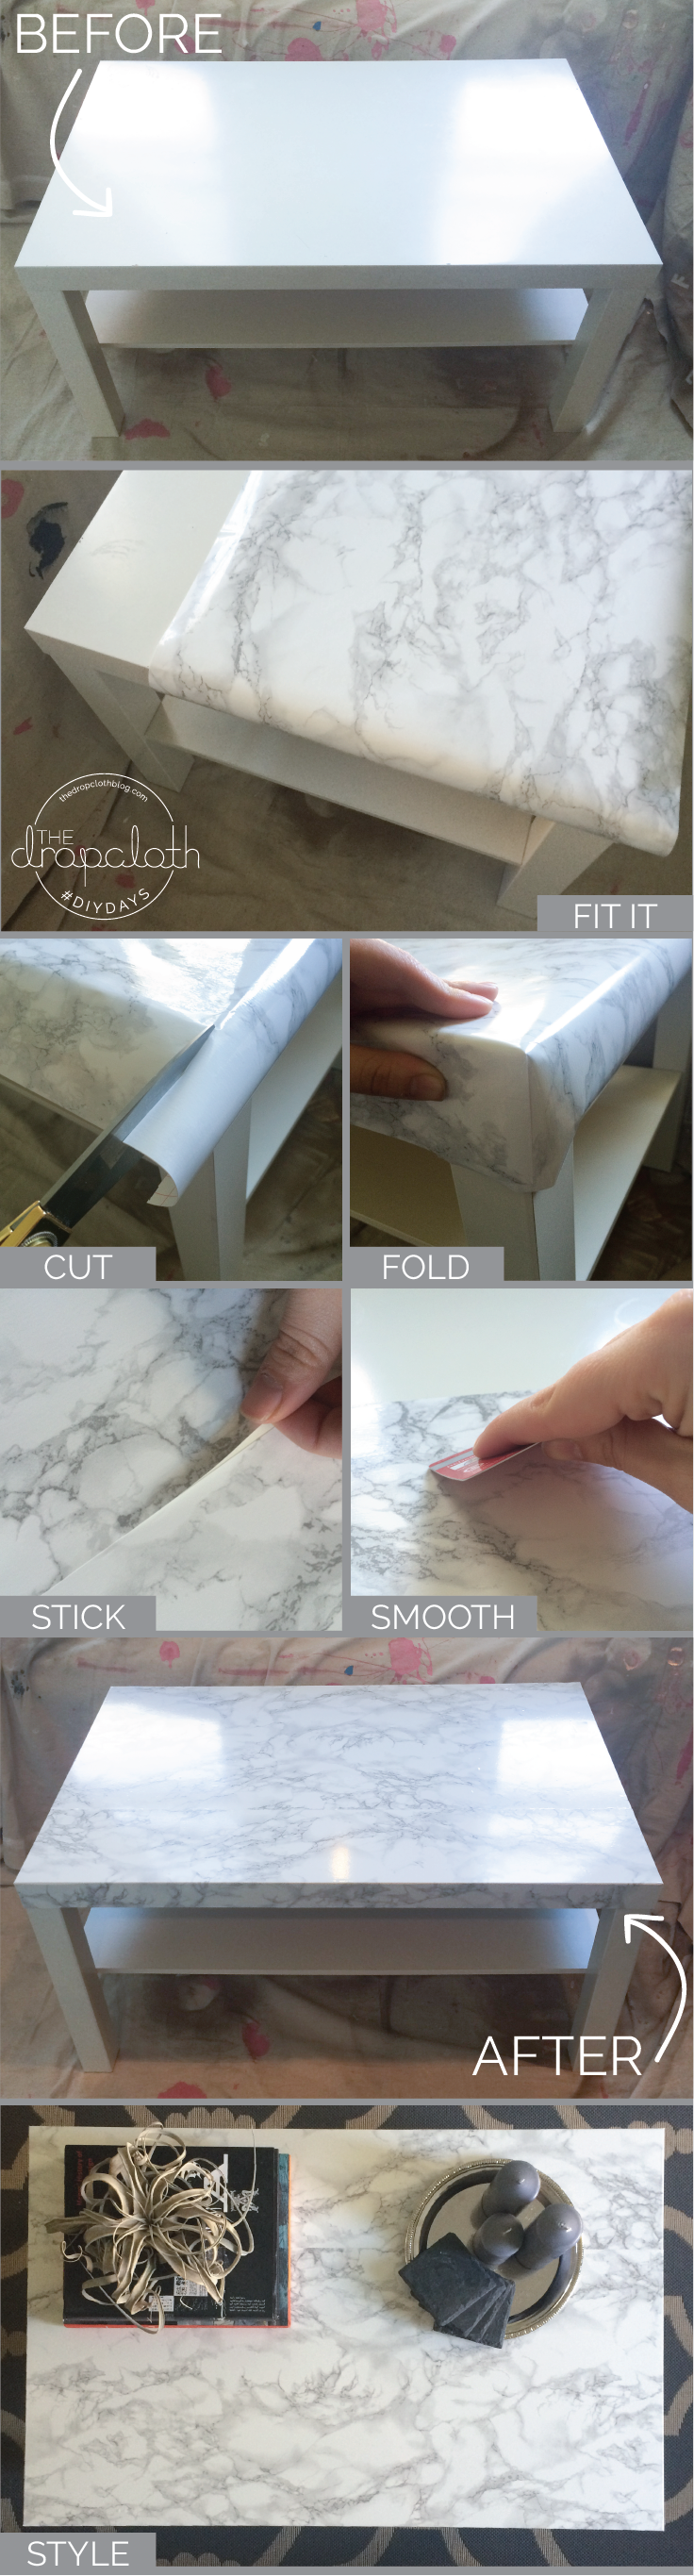 Faux Marbletop Coffeetable Ikea Hack — The Dropcloth